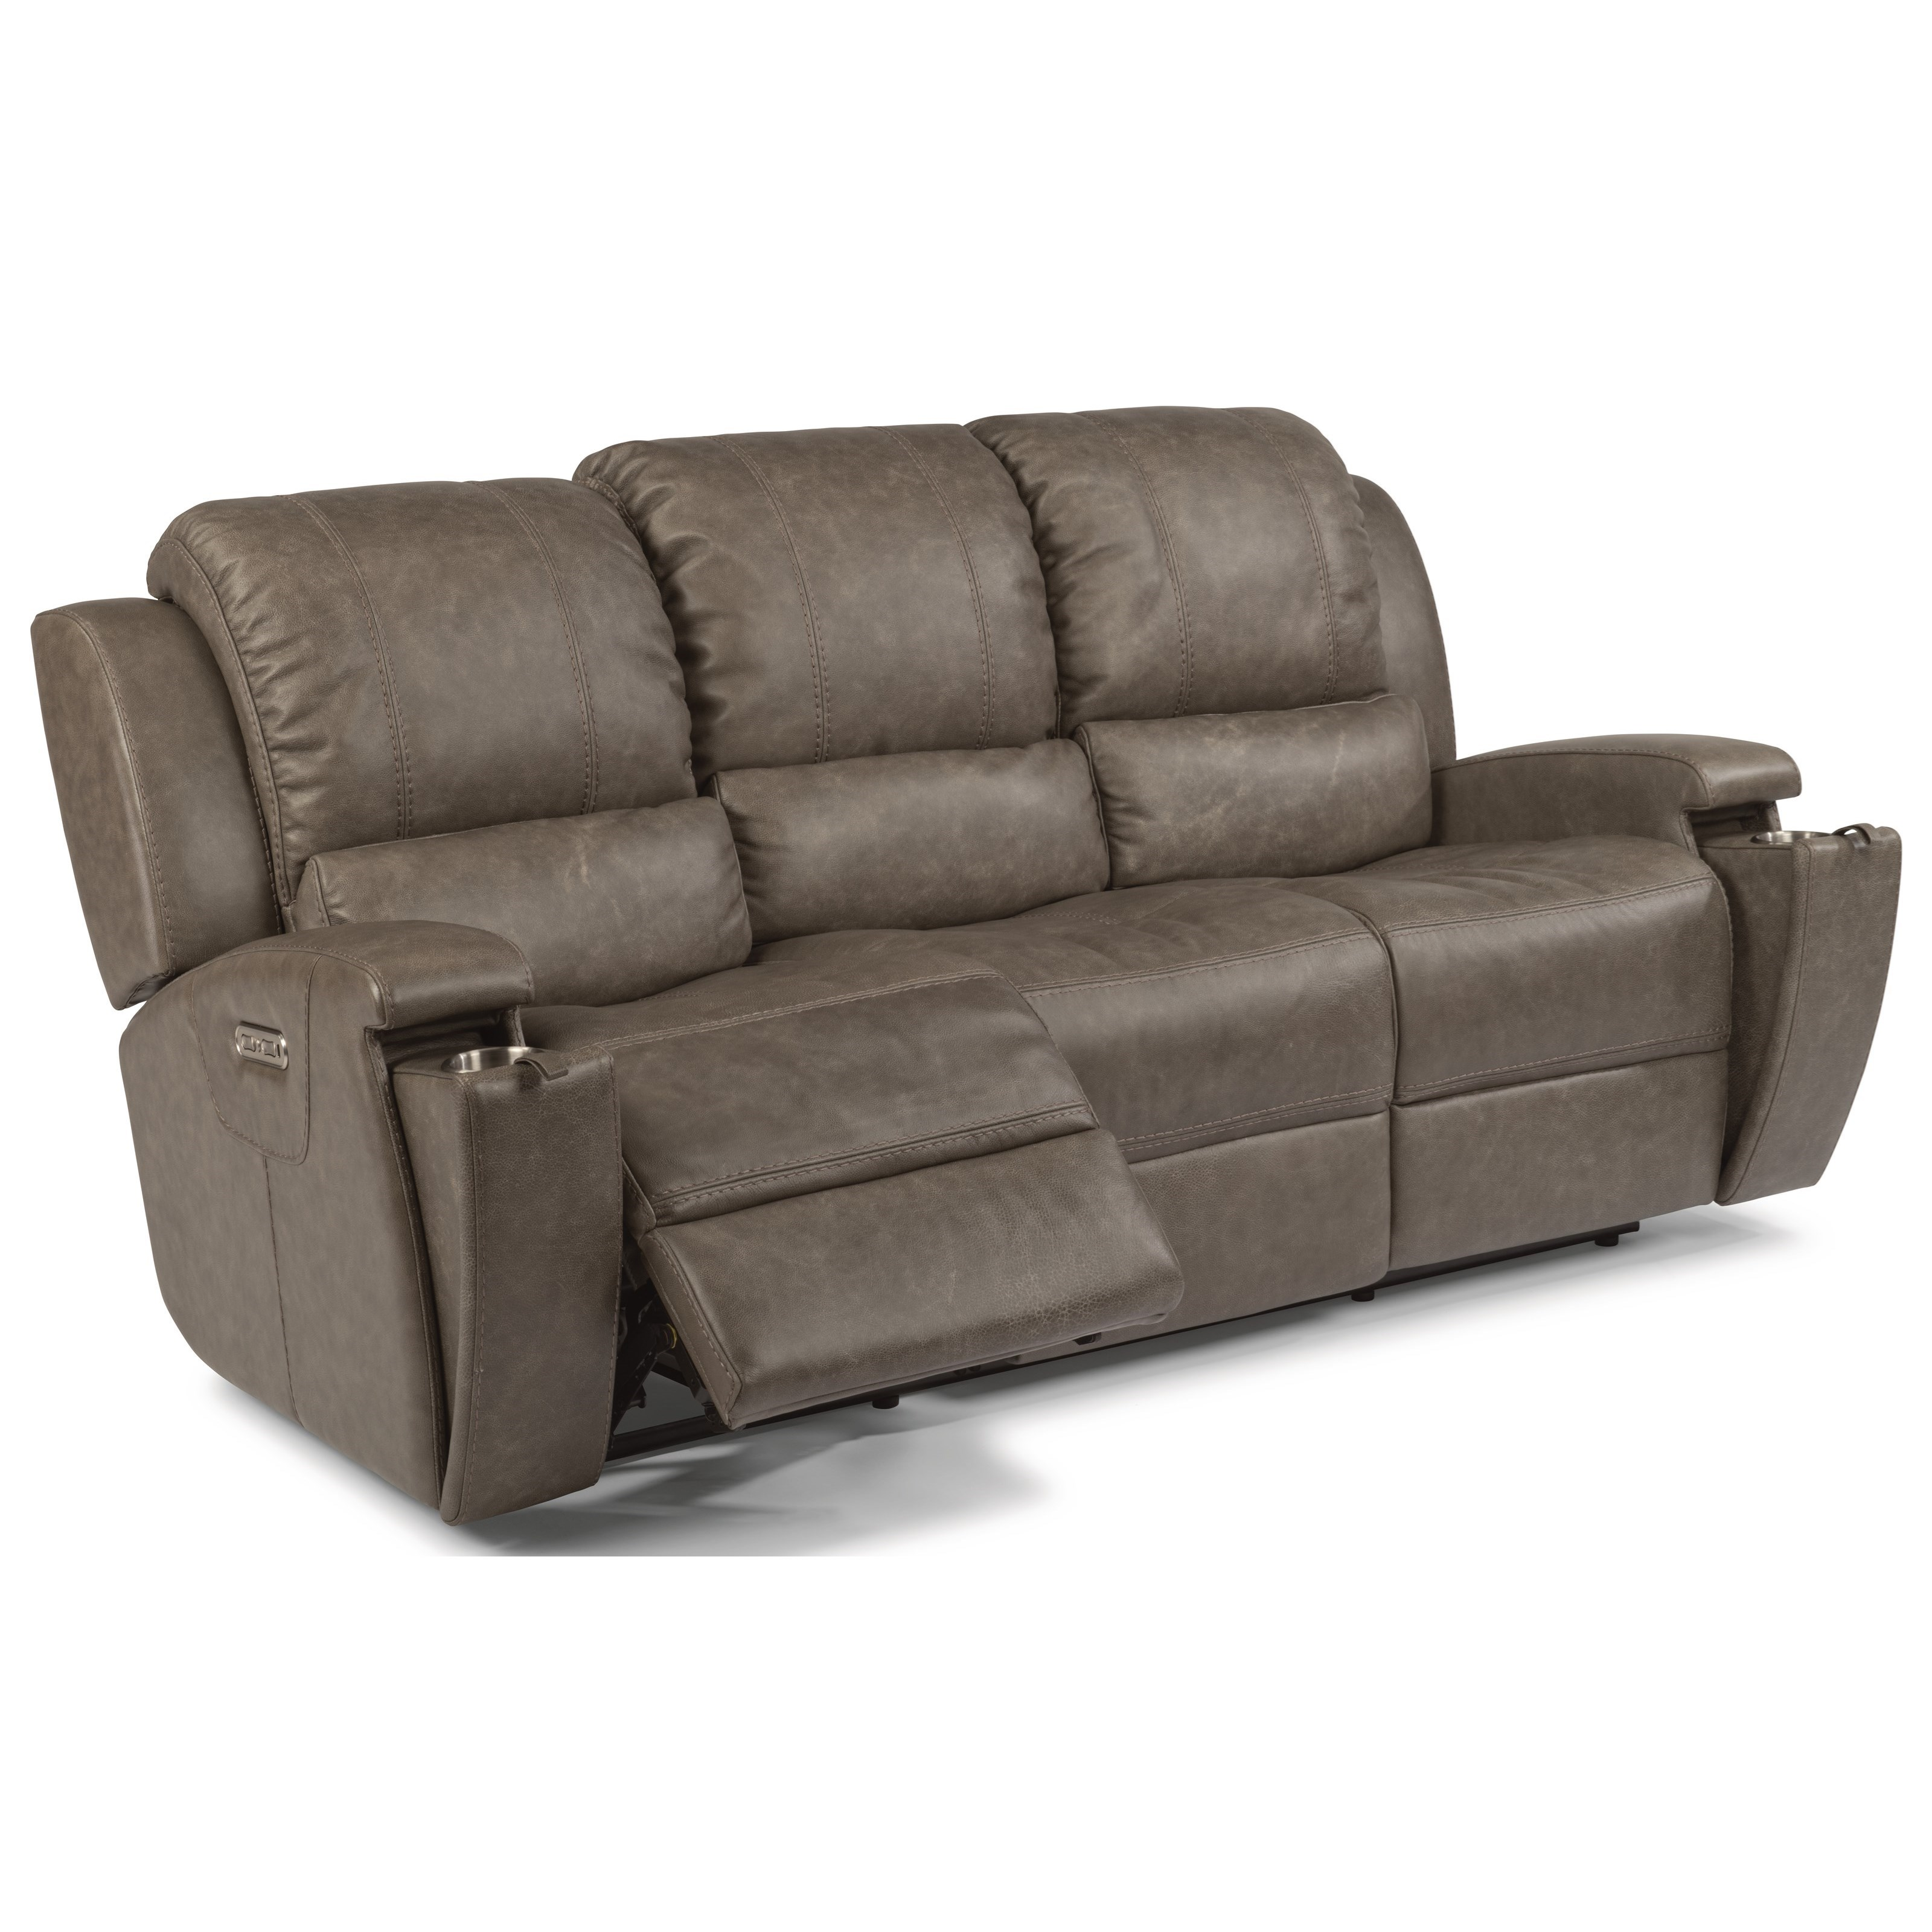 Flexsteel Latitudes Asher Contemporary Power Reclining